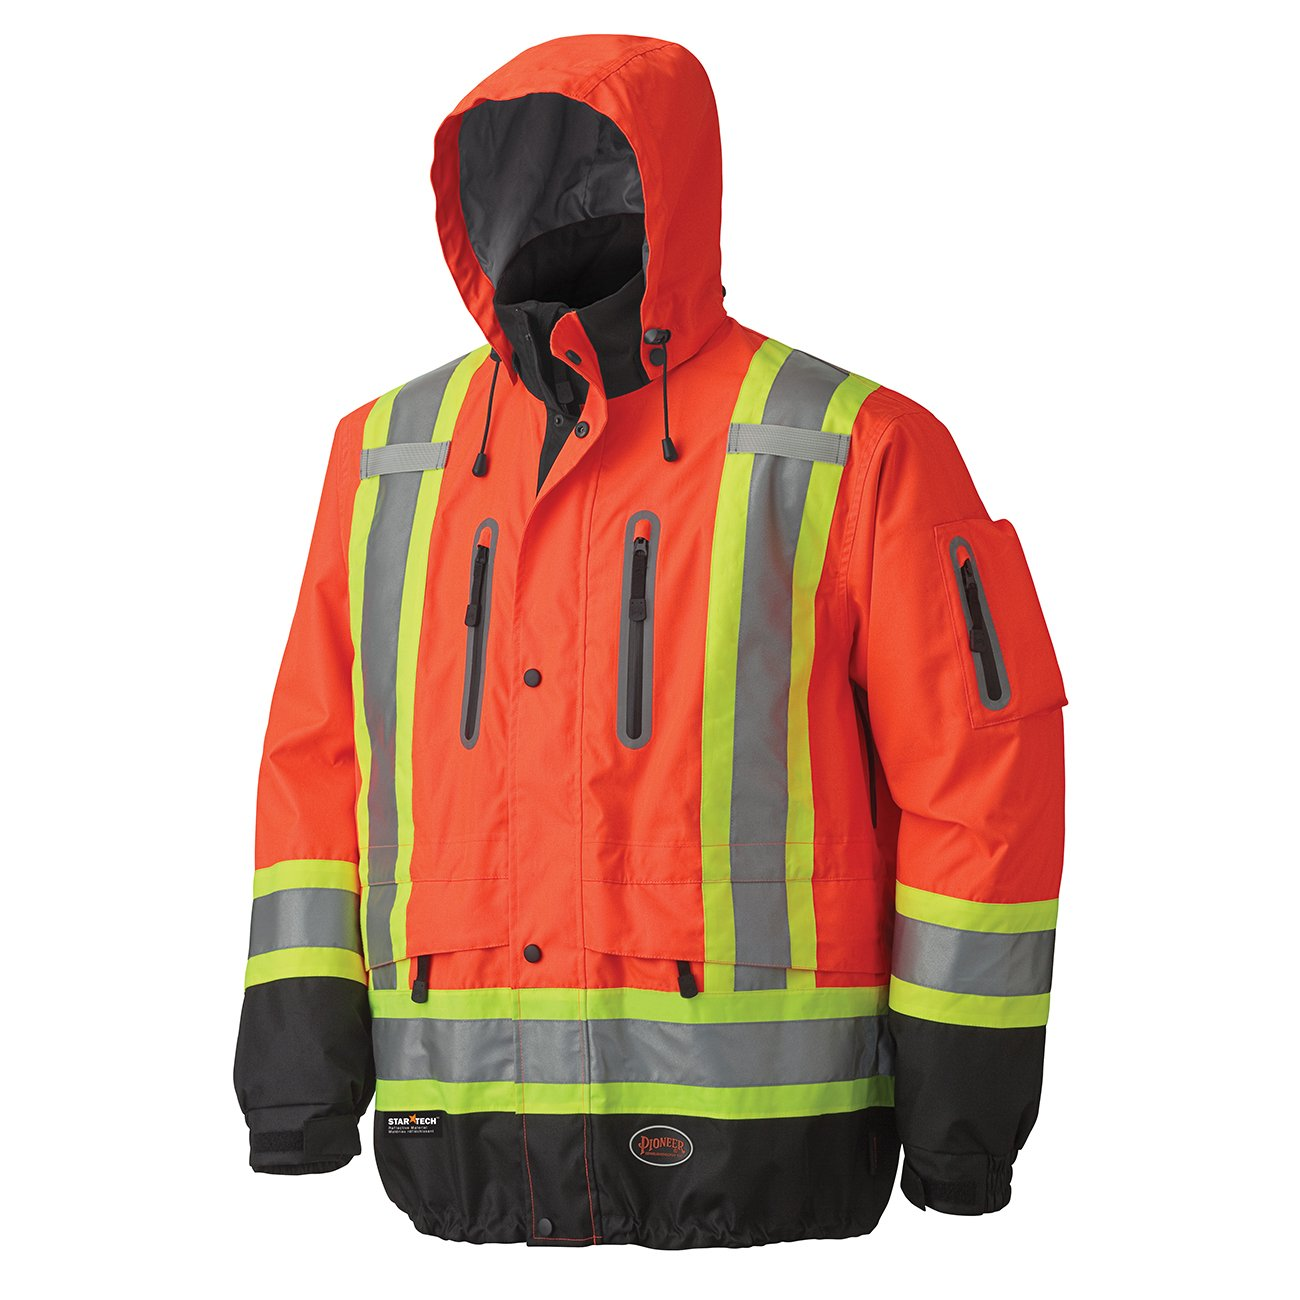 Pioneer V1130160-XS Premium High Visibility Safety Jacket-Waterproof, Green, X-Small